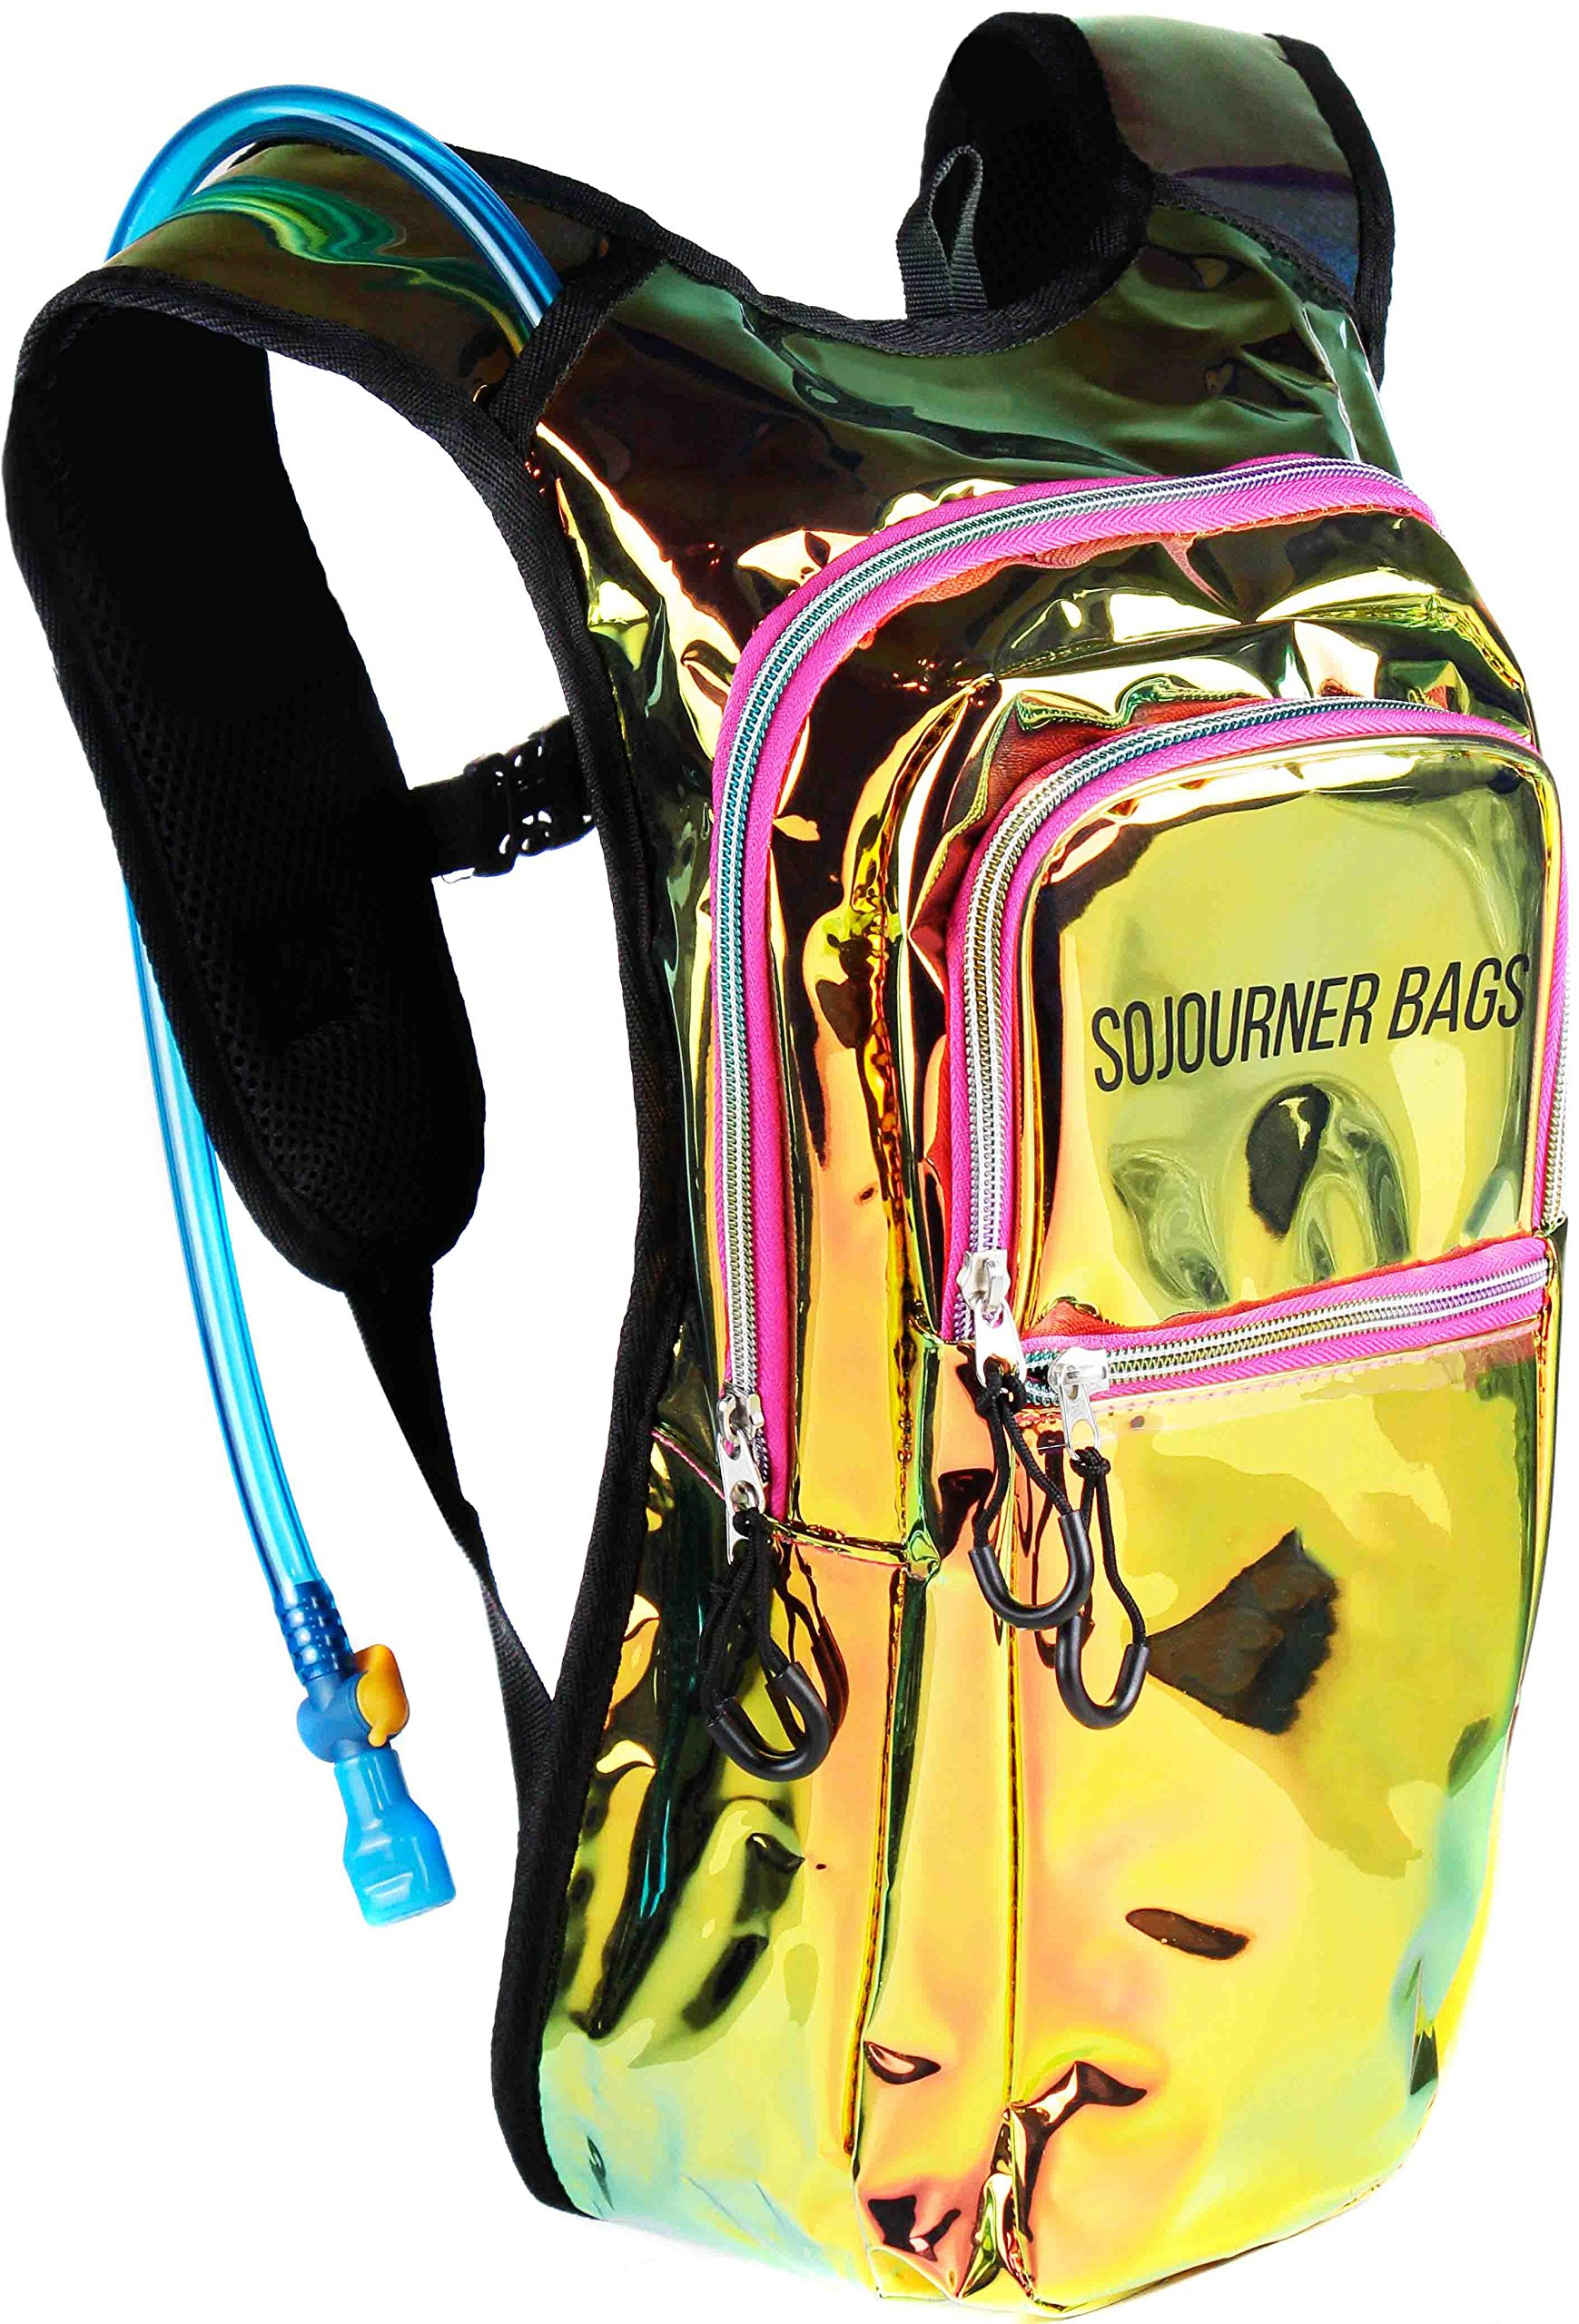 Sojourner Rave Hydration Pack Backpack - 2L Water Bladder Included for Festivals, Raves, Hiking, Biking, Climbing, Running and More (Multiple Styles) (Laser Holographic - Pink)